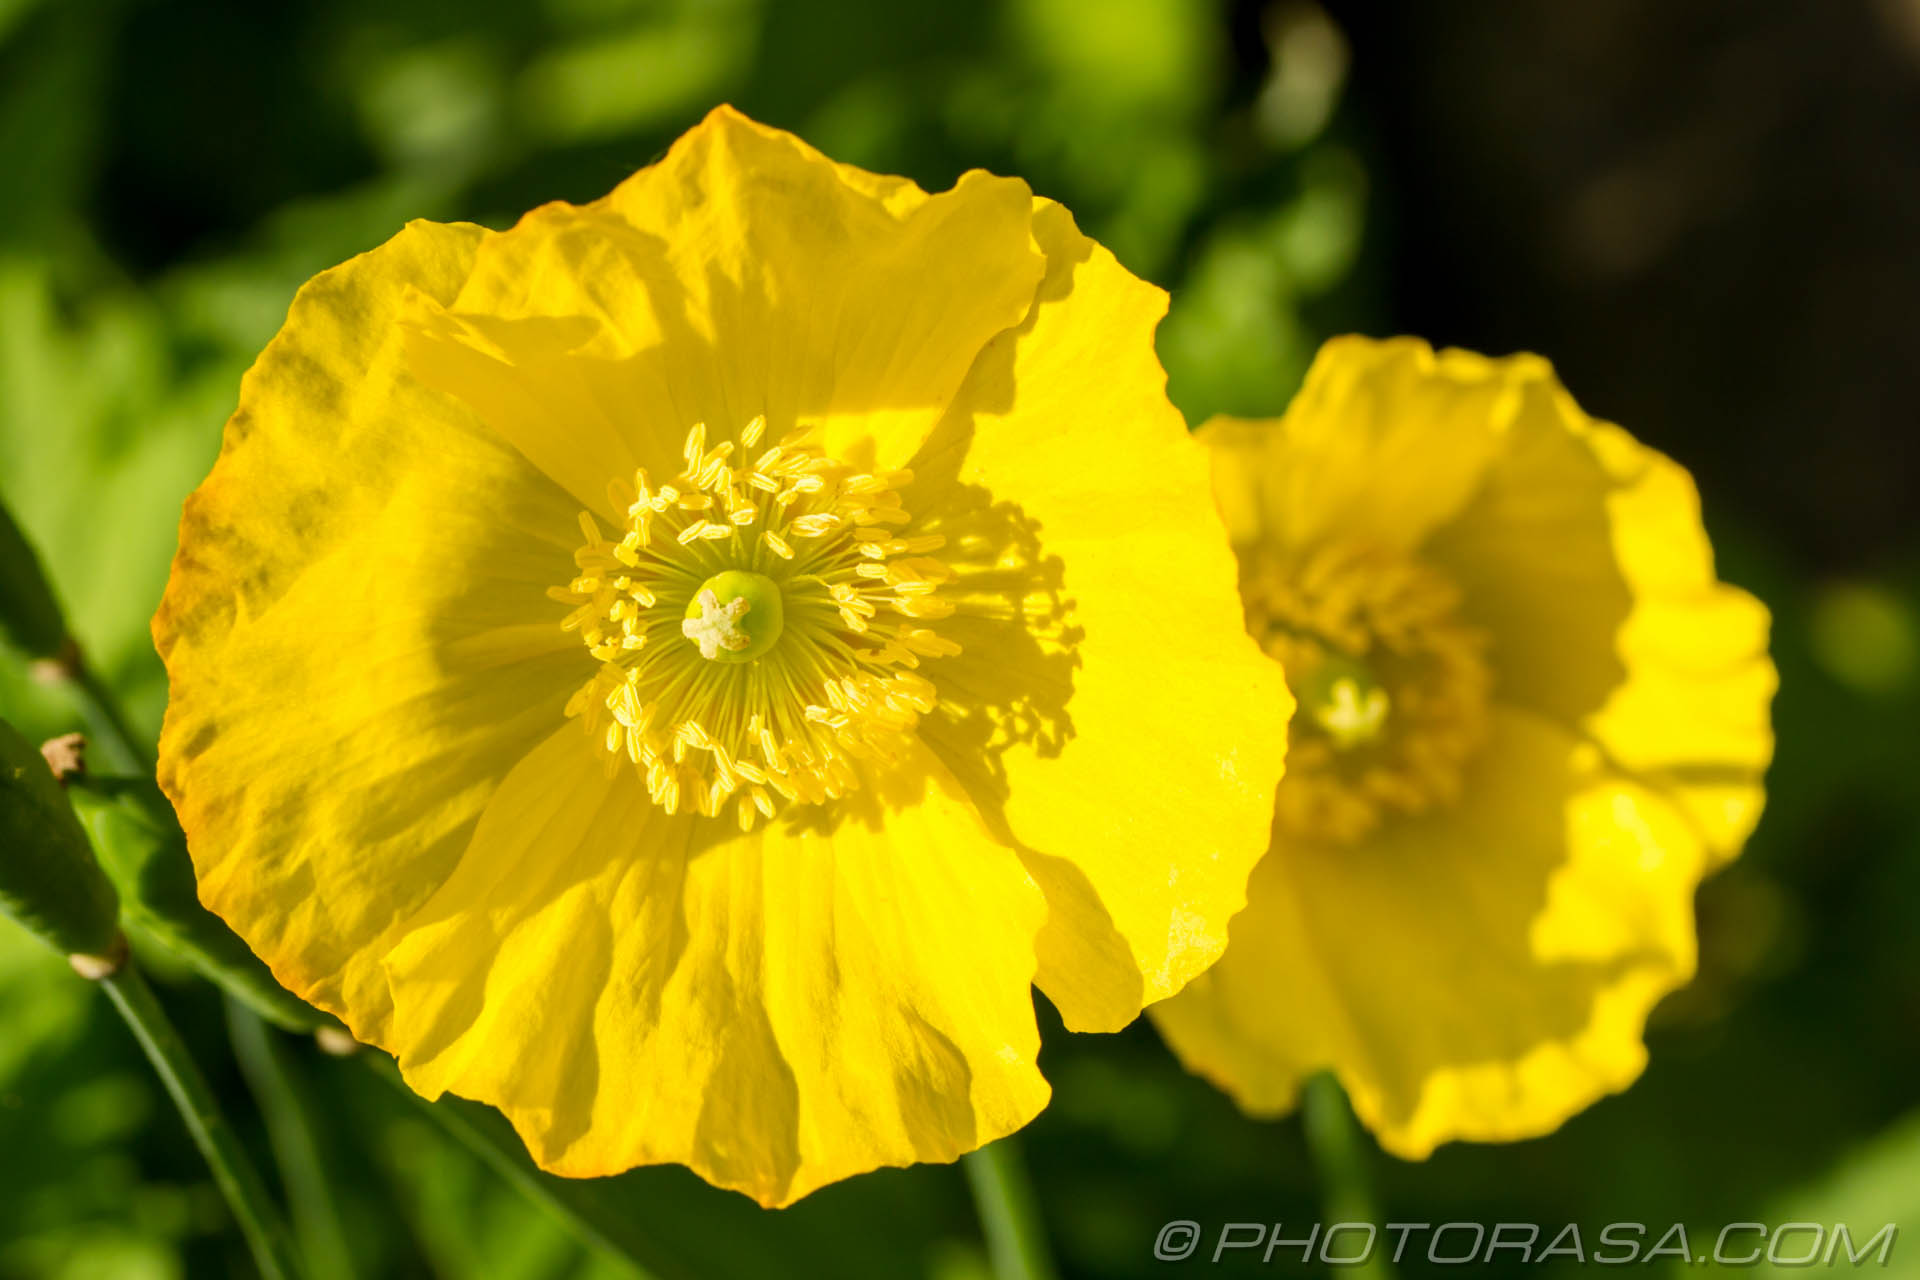 http://photorasa.com/buttercups/two-giant-buttercups/